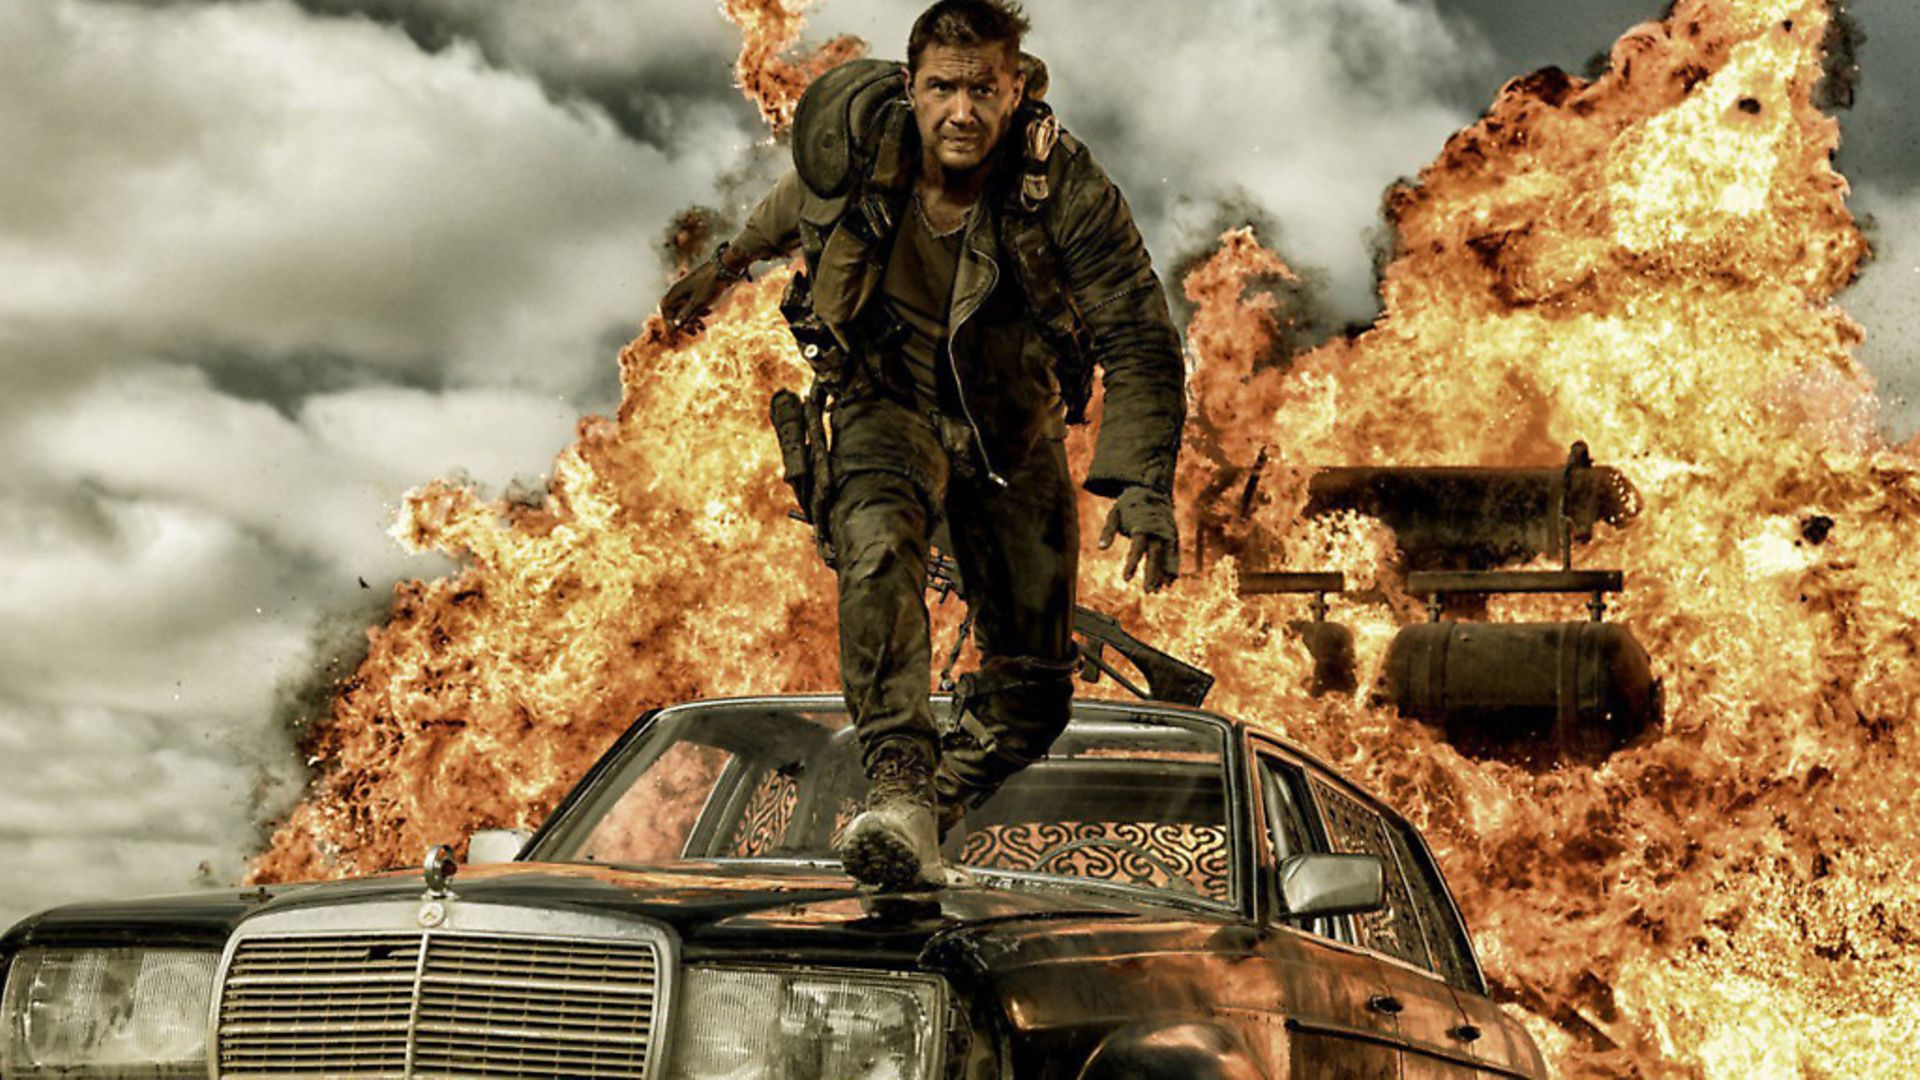 Tom Hardy in Mad Max:Fury Road.Photo: Cover Images. - Credit: Cover Images